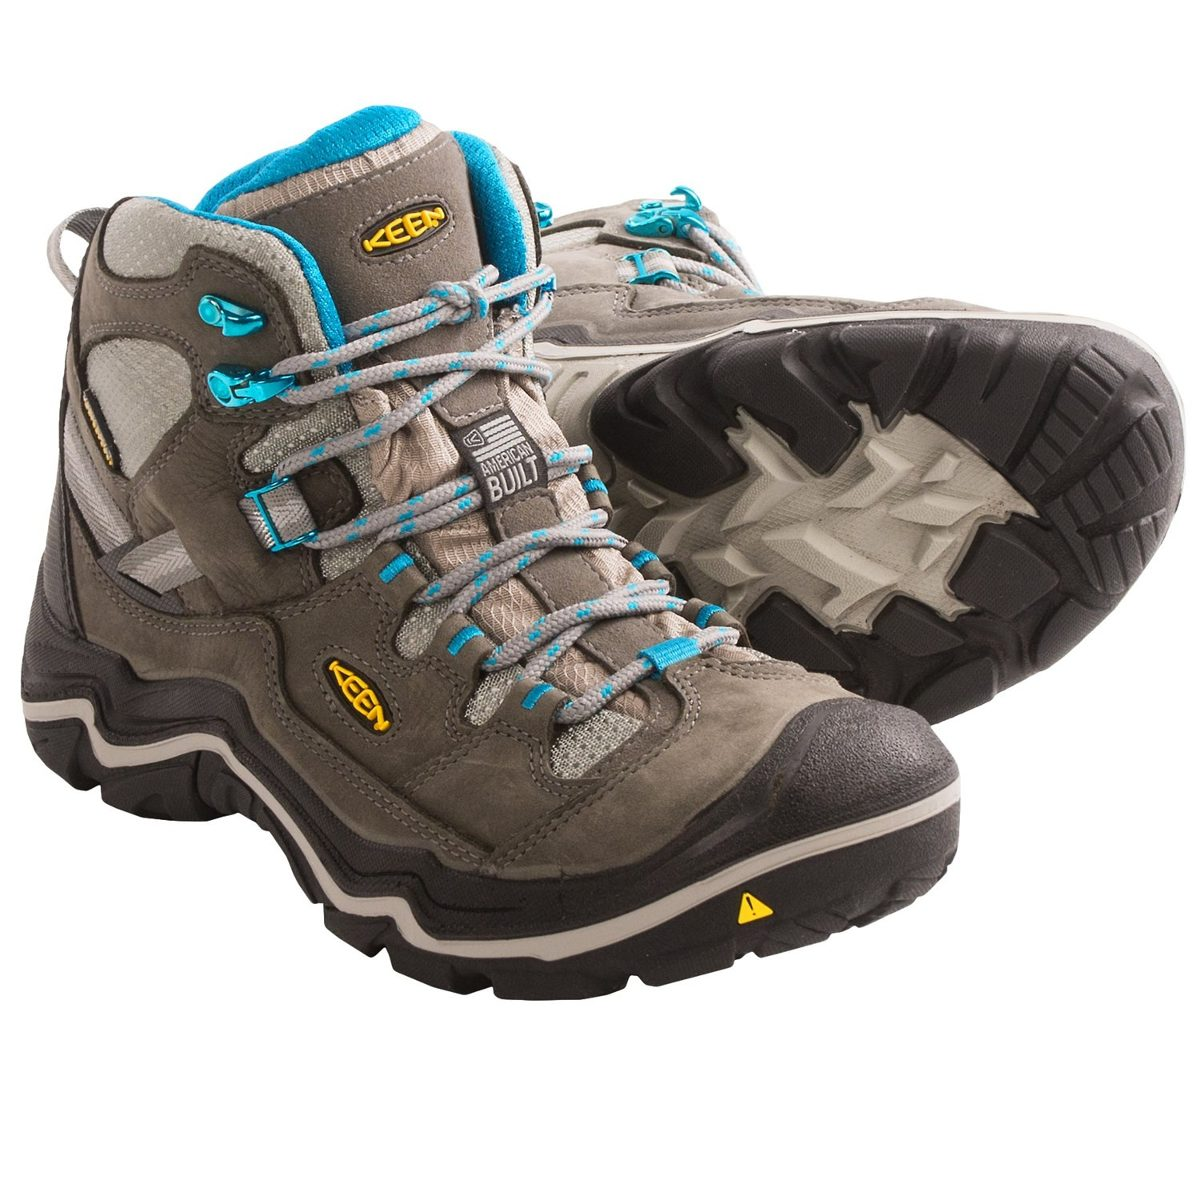 zapatos keen mujer s_MCO_v_F_f_19435225_3429